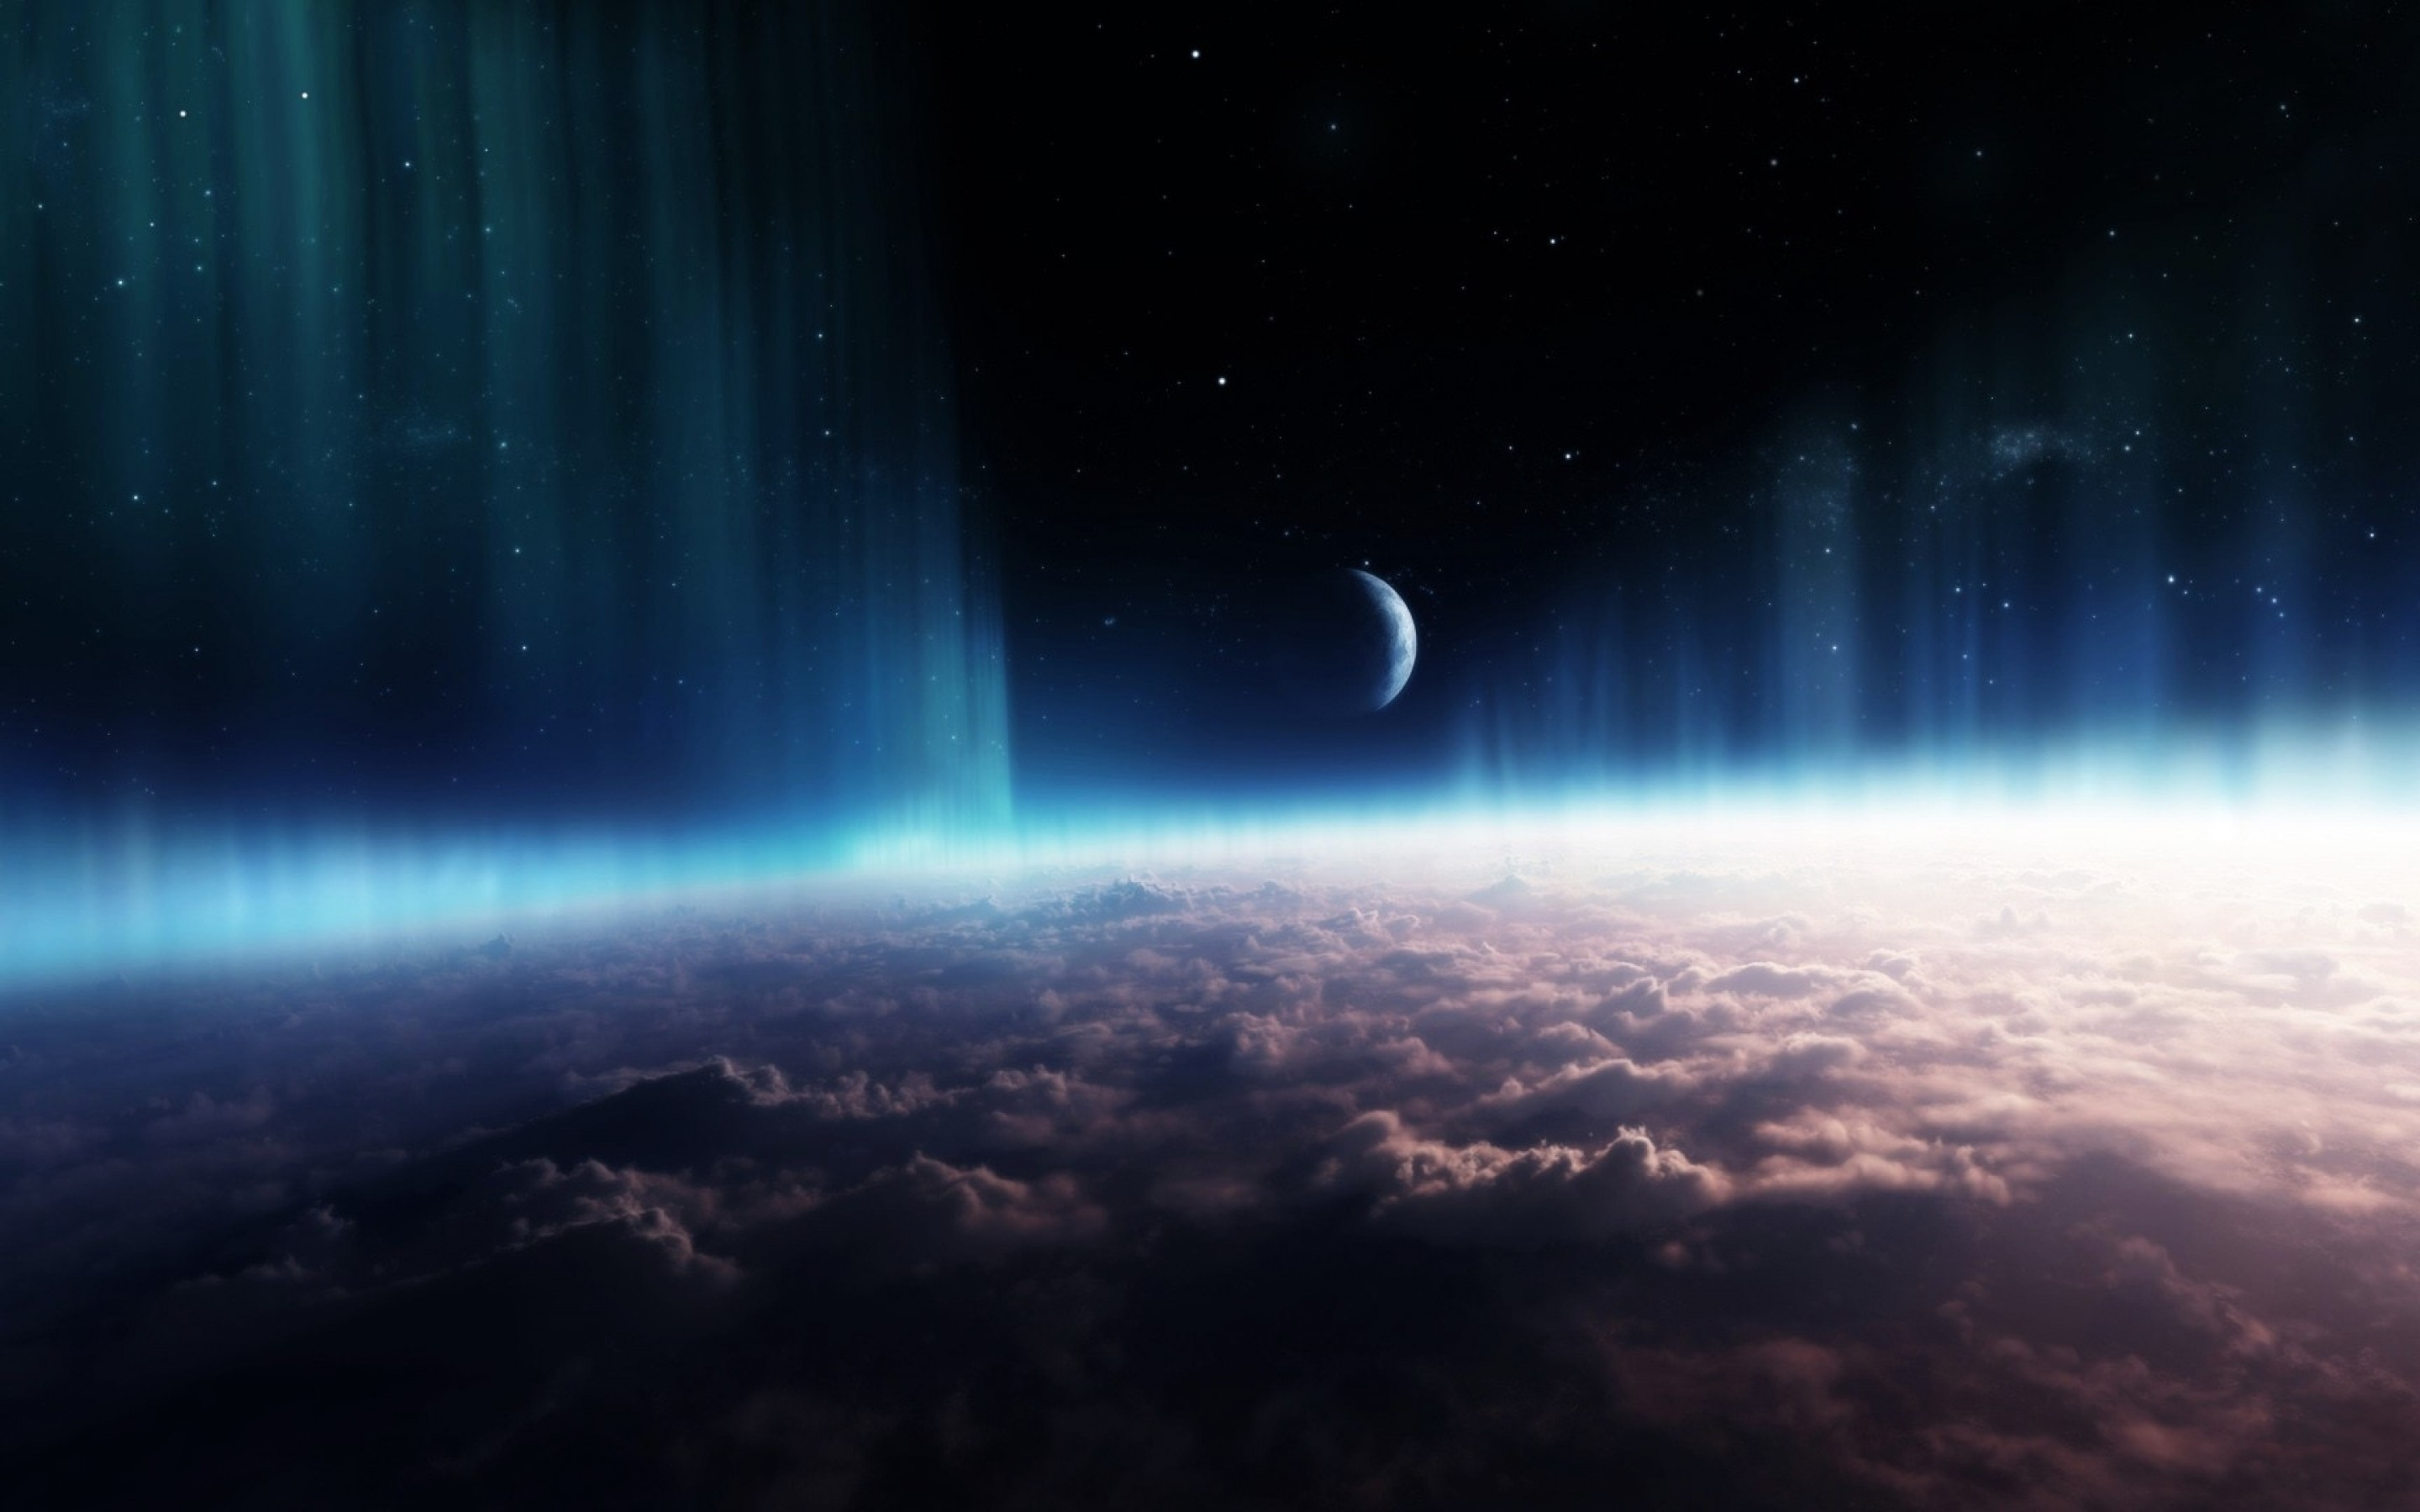 Space Wallpapers High Resolution: Super High Resolution Space Wallpaper